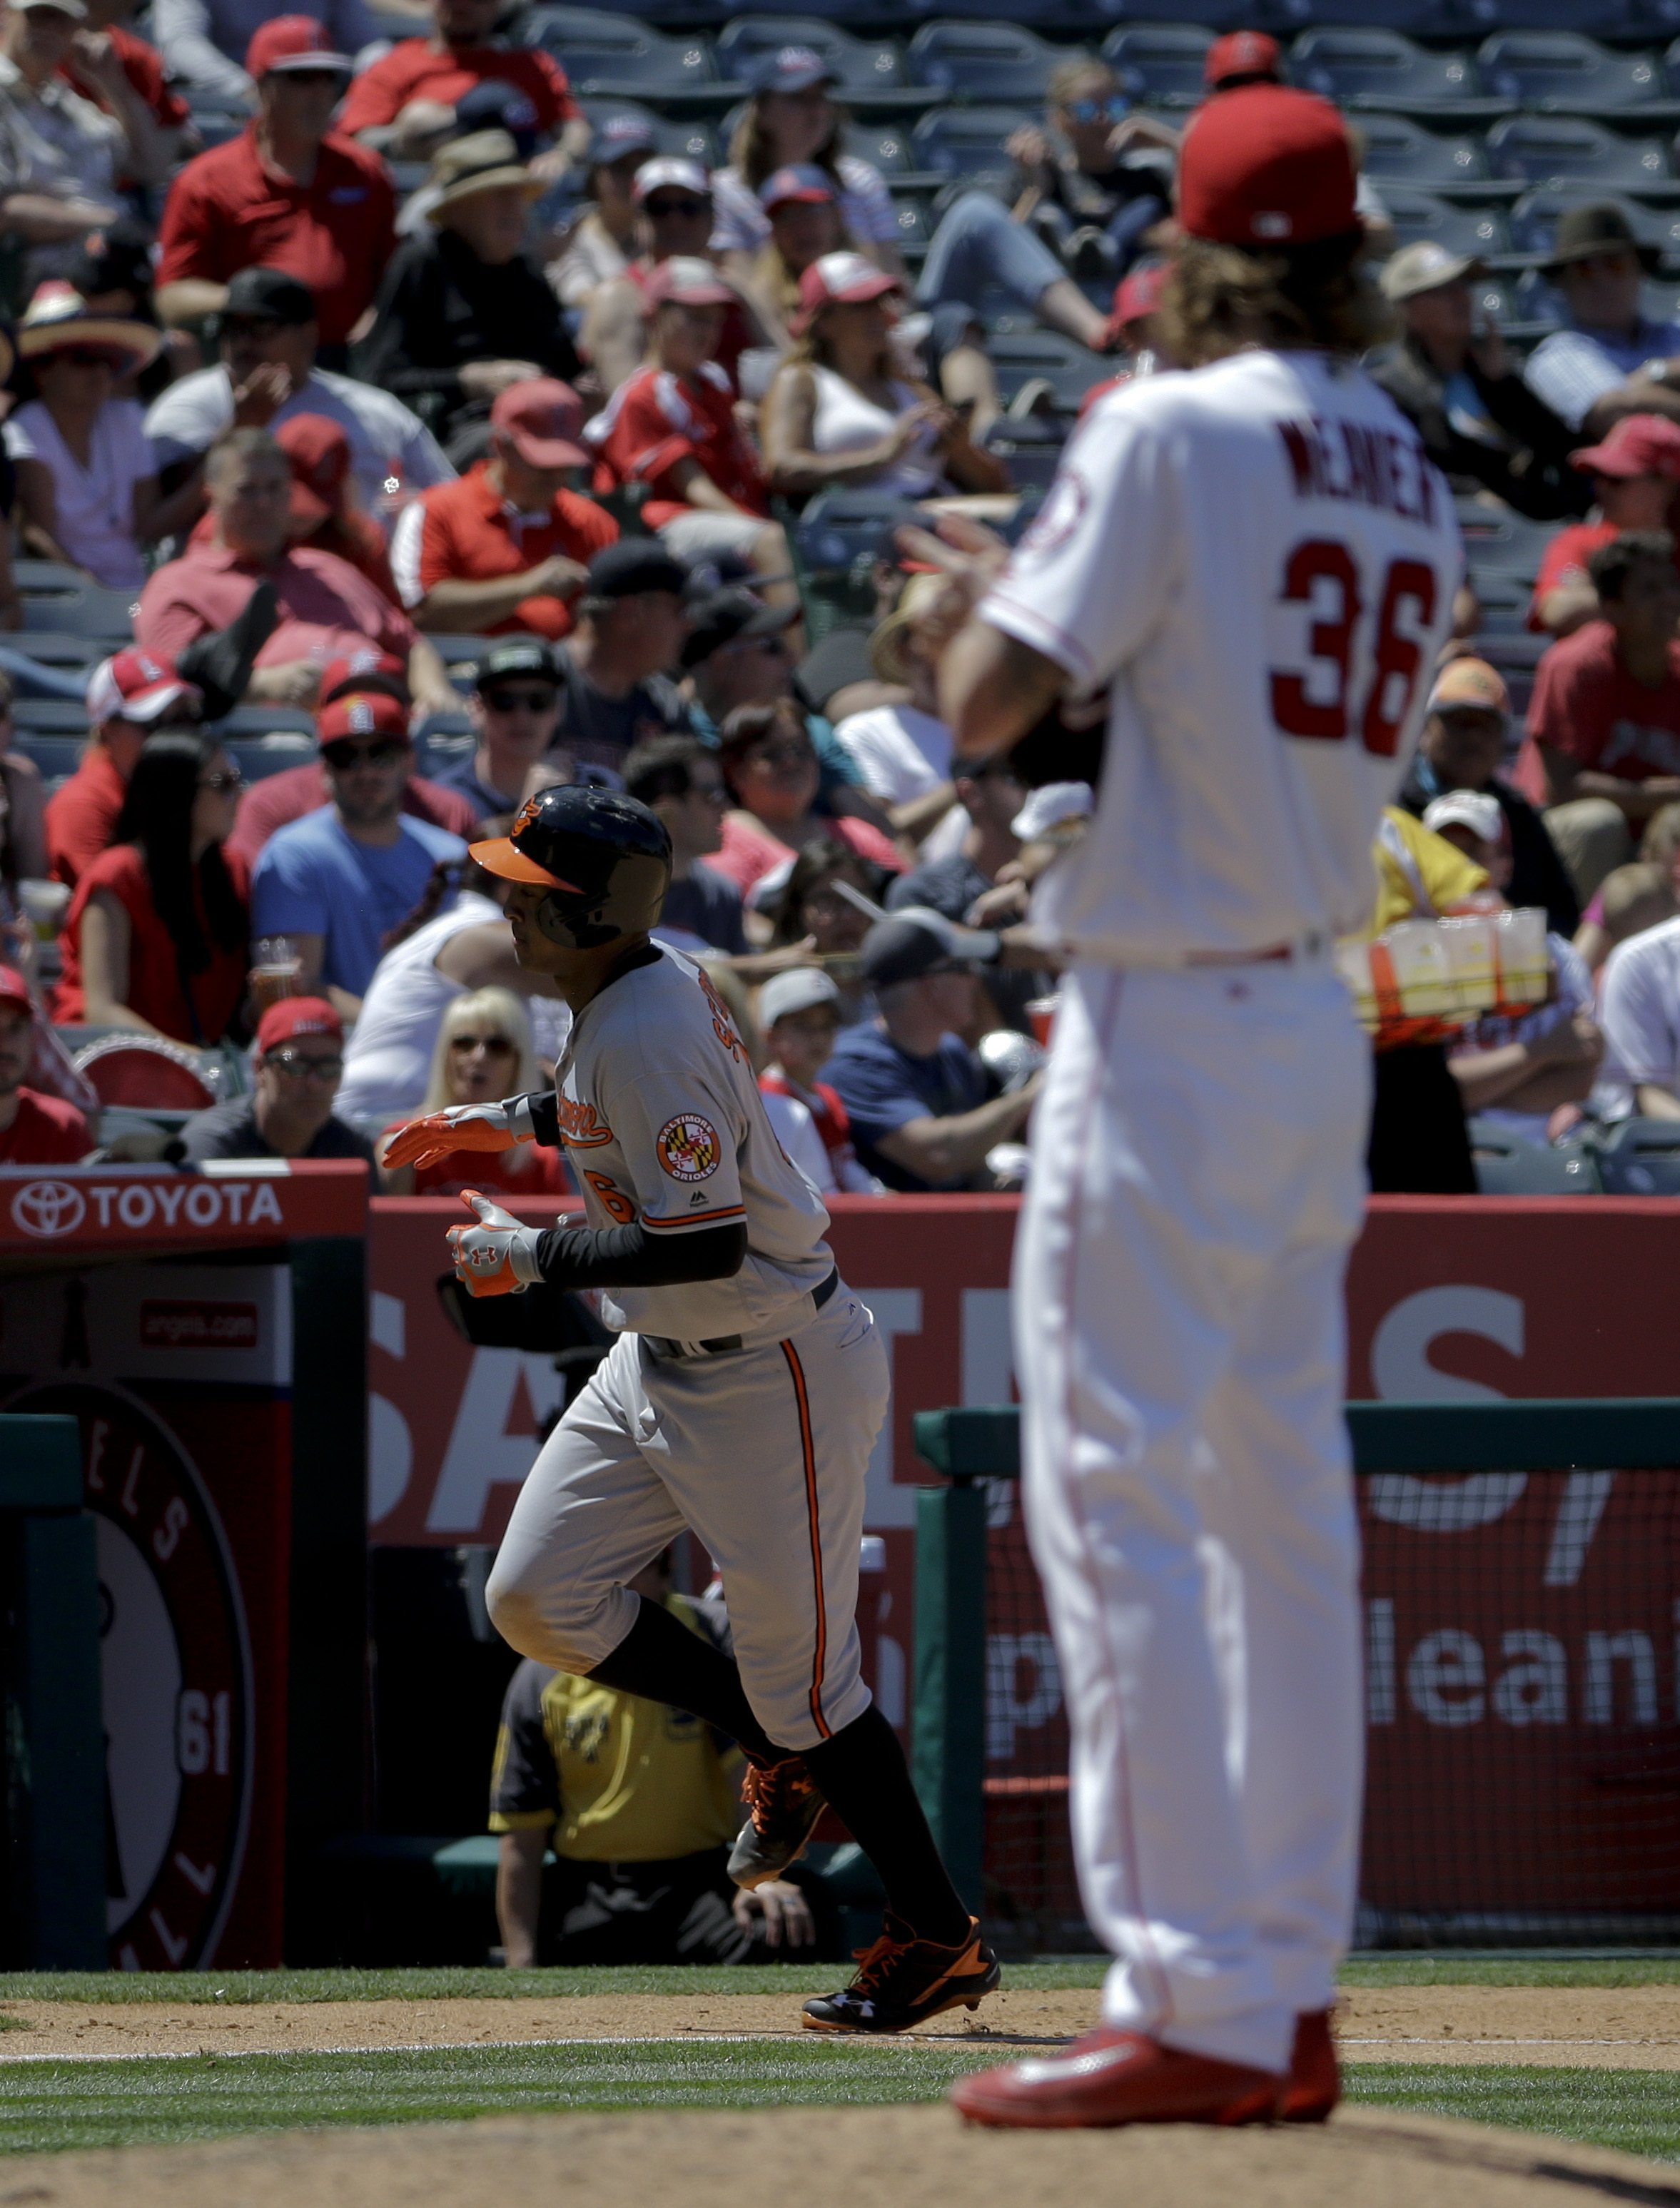 Baltimore Orioles' Jonathan Schoop celebrates as he rounds the bases after hitting a two-run home run off Los Angeles Angels starting pitcher Jered Weaver (36) during the seventh inning of a baseball game in Anaheim, Calif., Sunday, May 22, 2016. (AP Phot